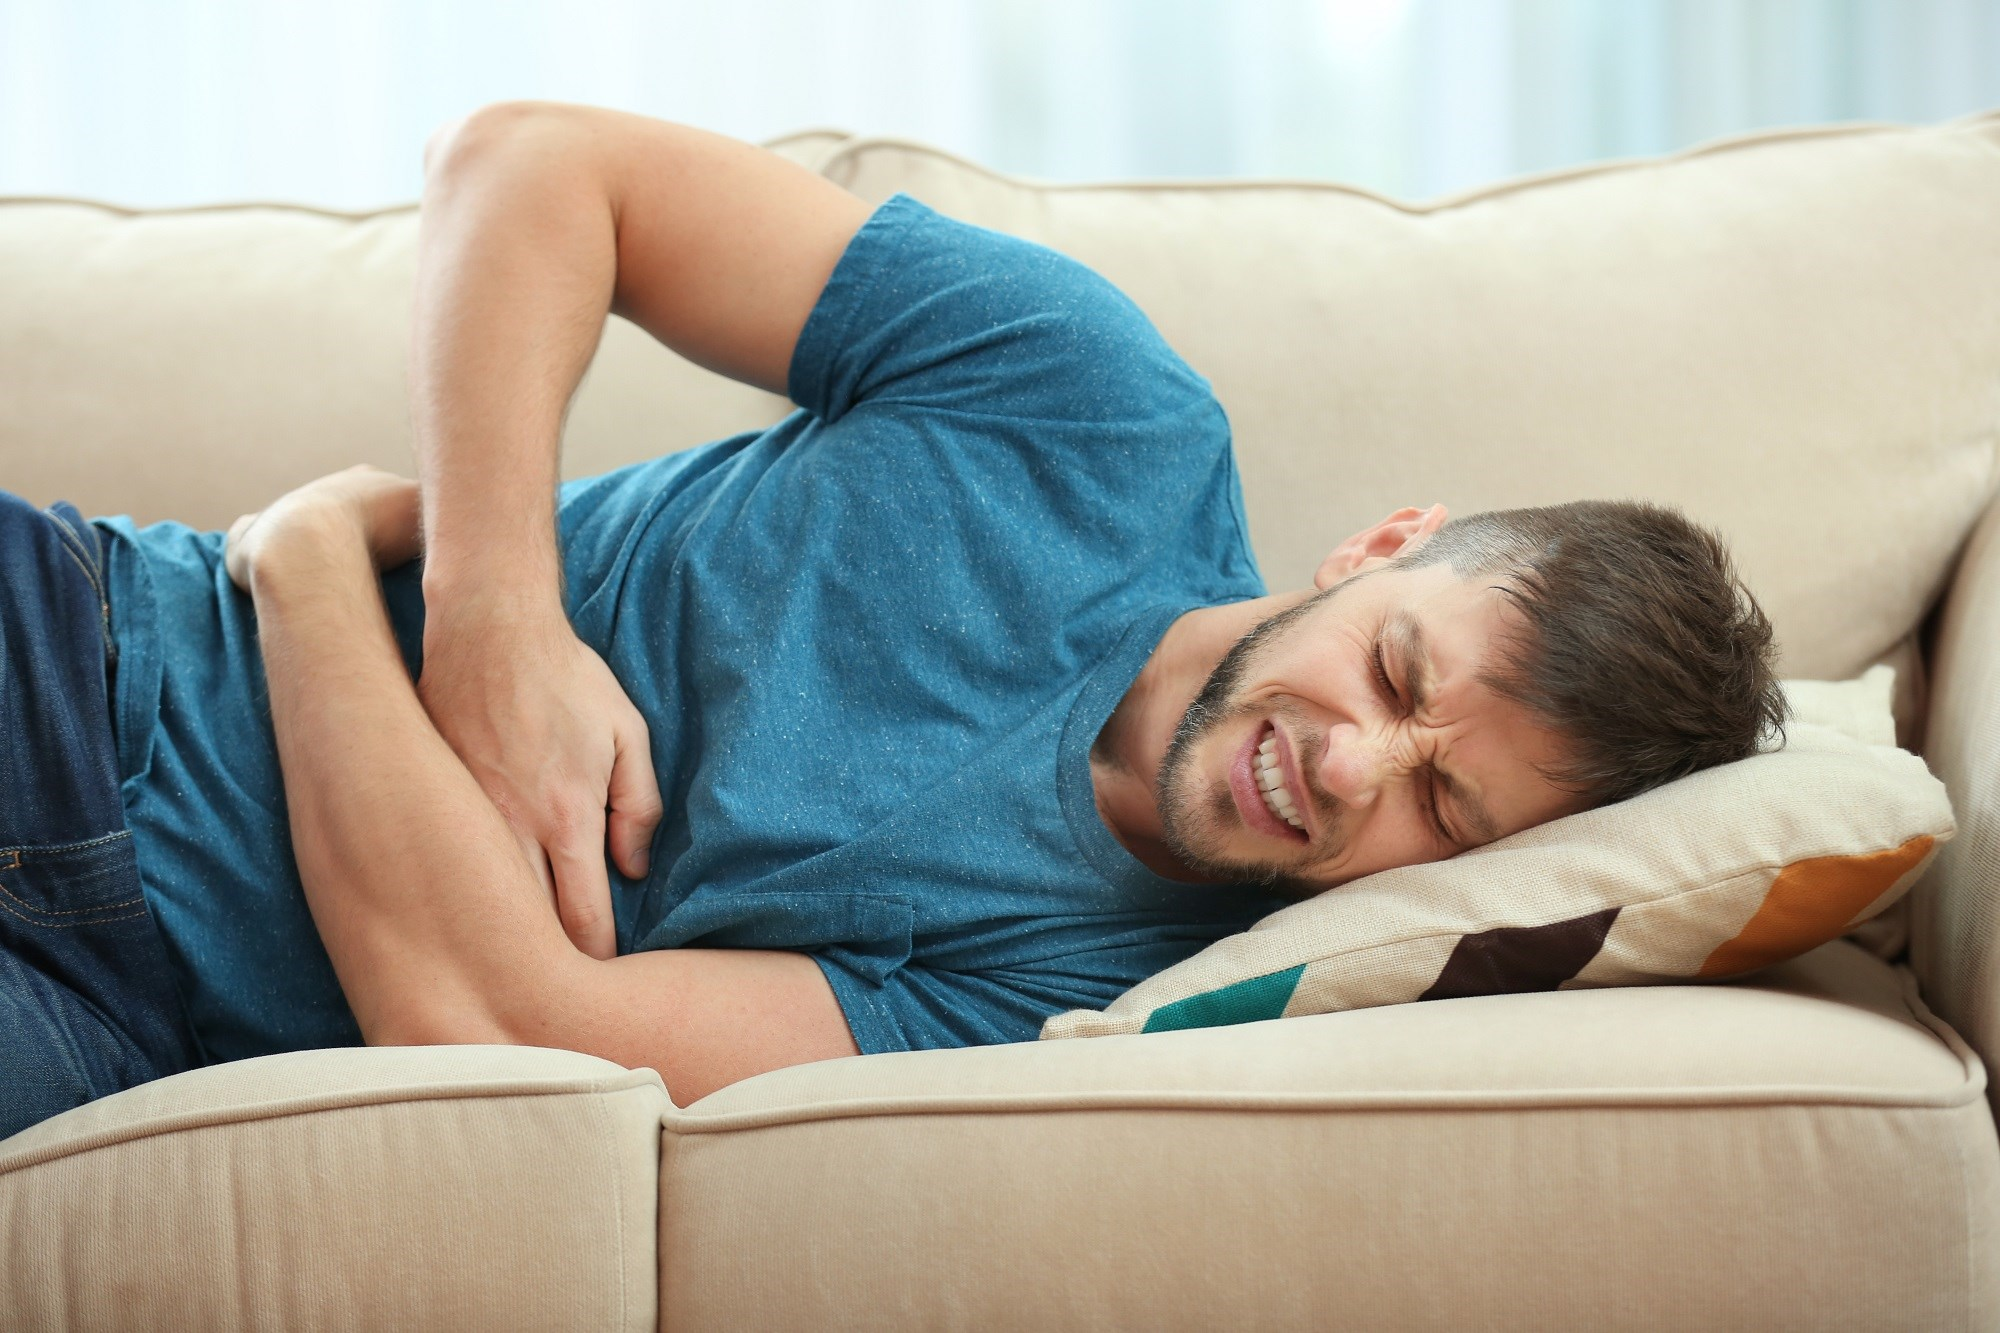 The study included 346 participants with irritable bowel syndrome with diarrhea who had inadequate symptom control with loperamide in the previous 12 months.